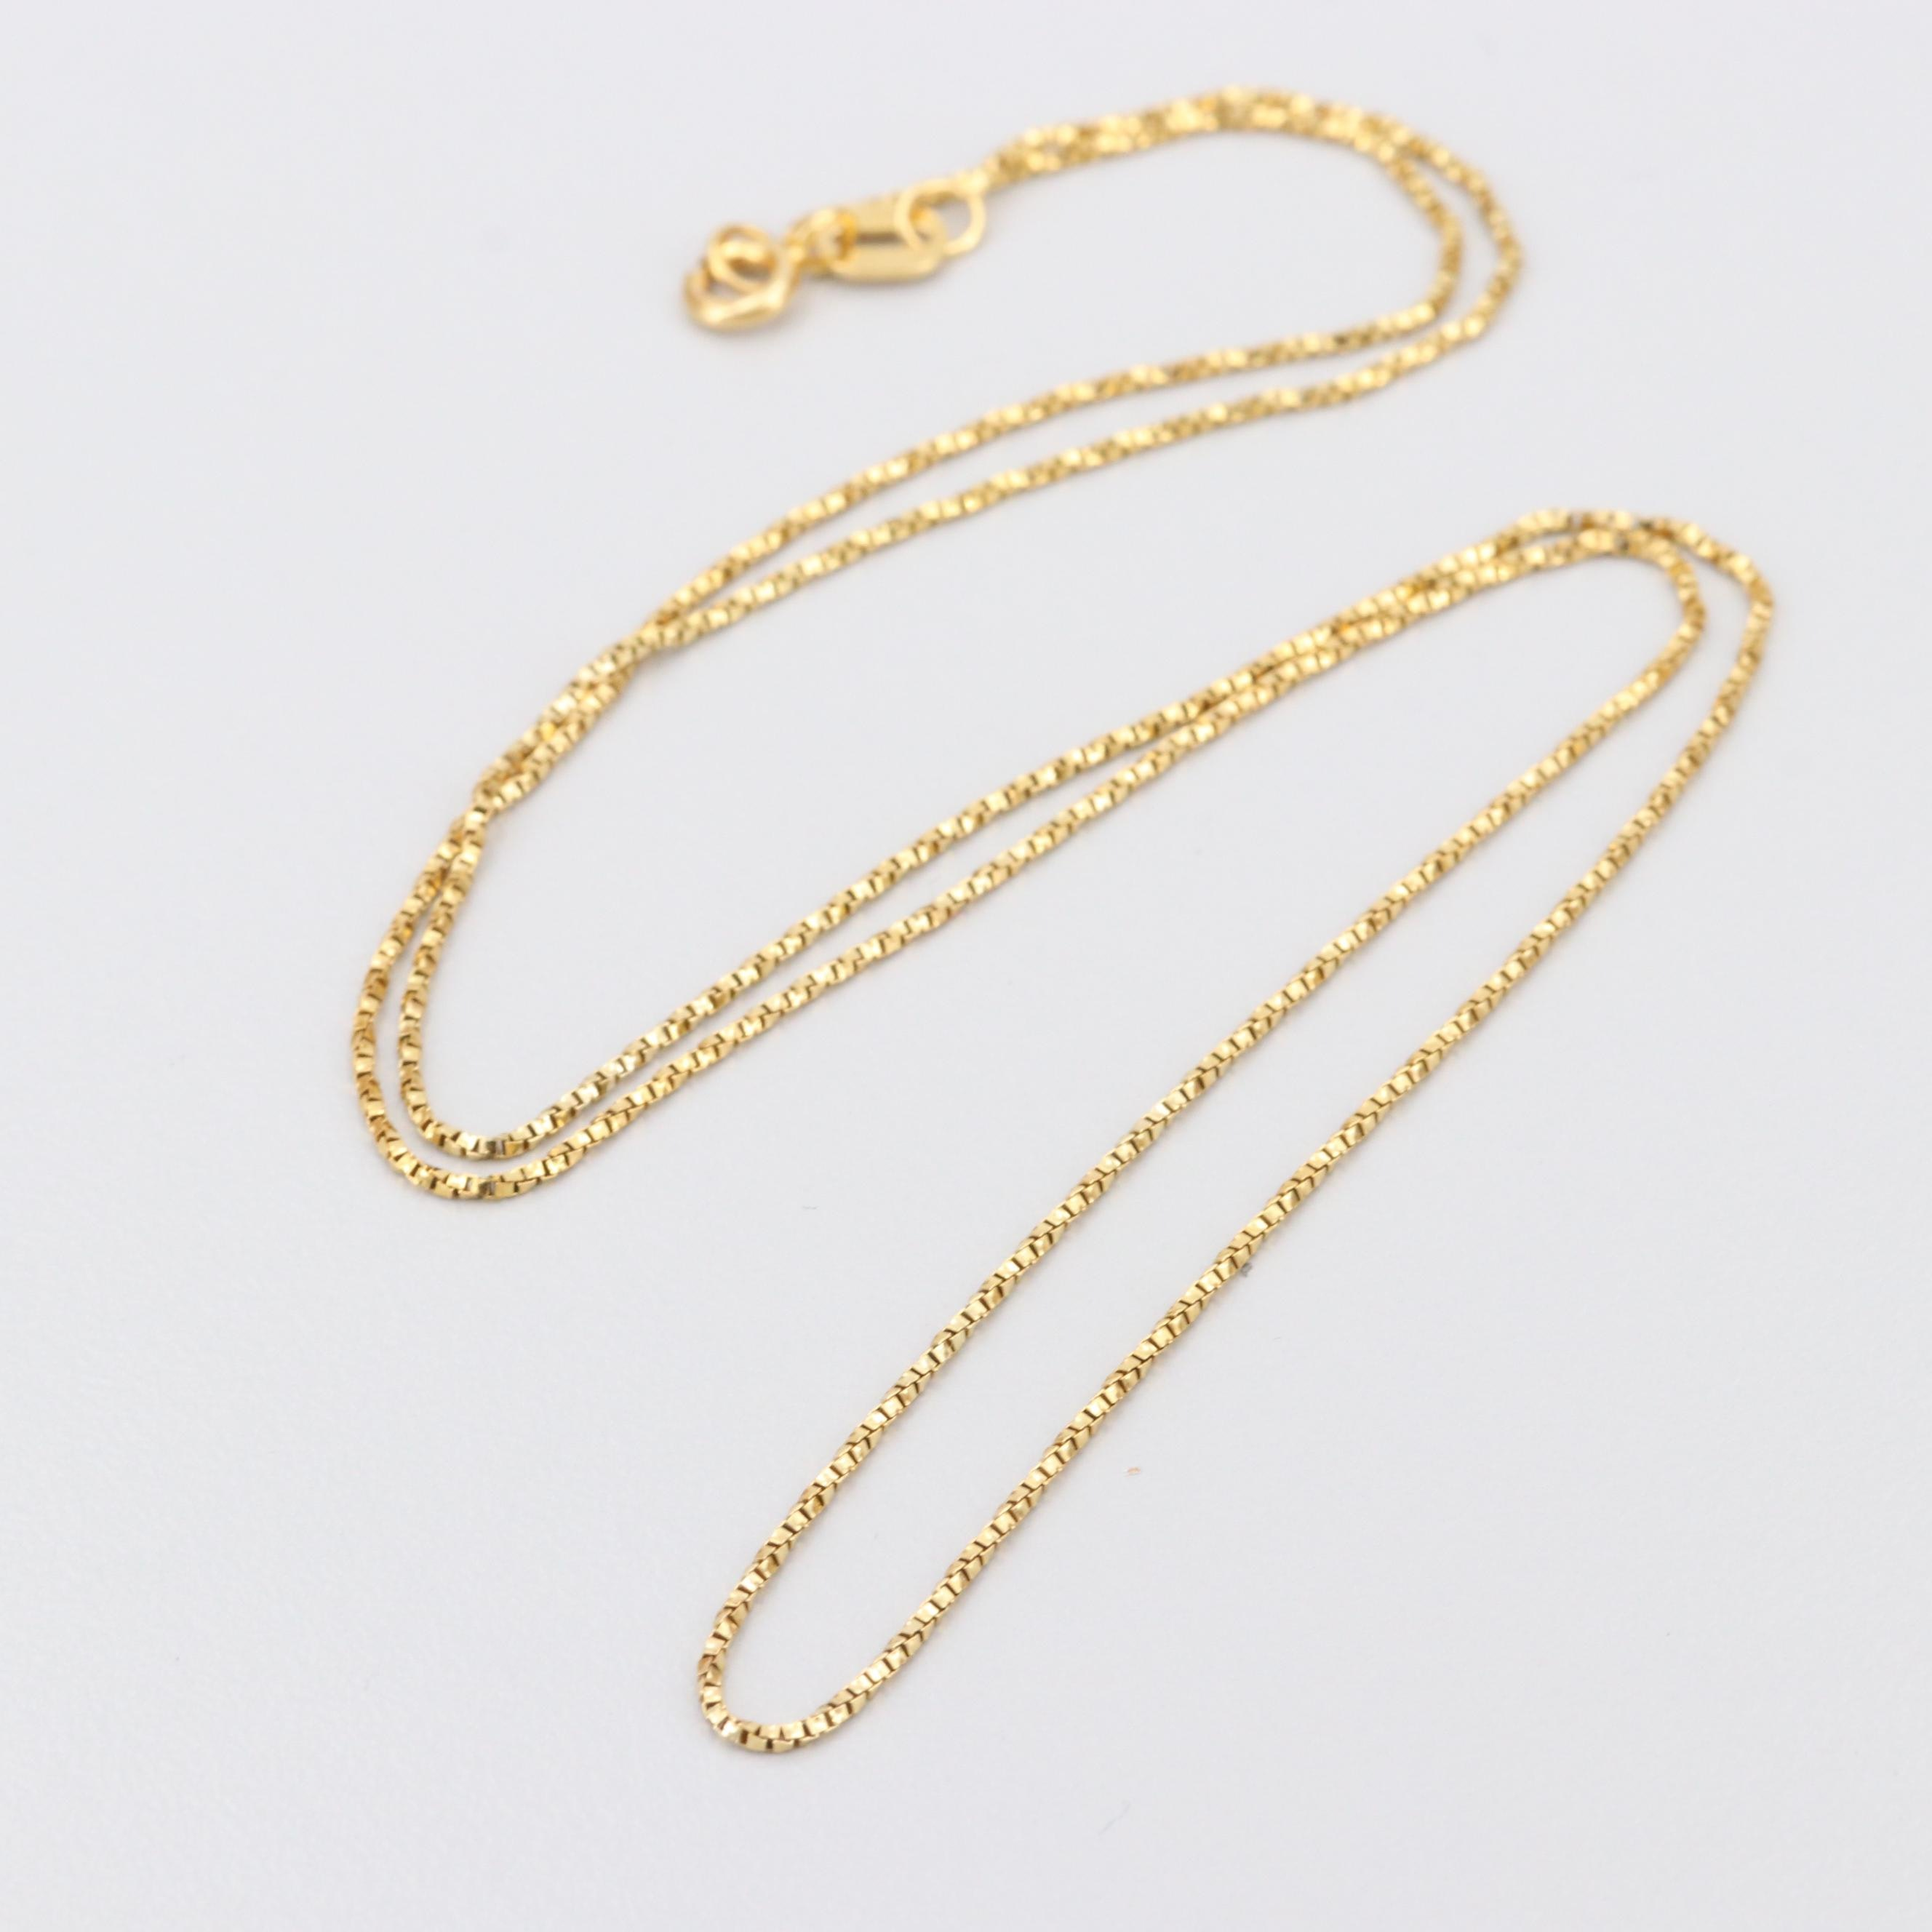 14K Yellow Gold Twisted Box Chain Link Necklace